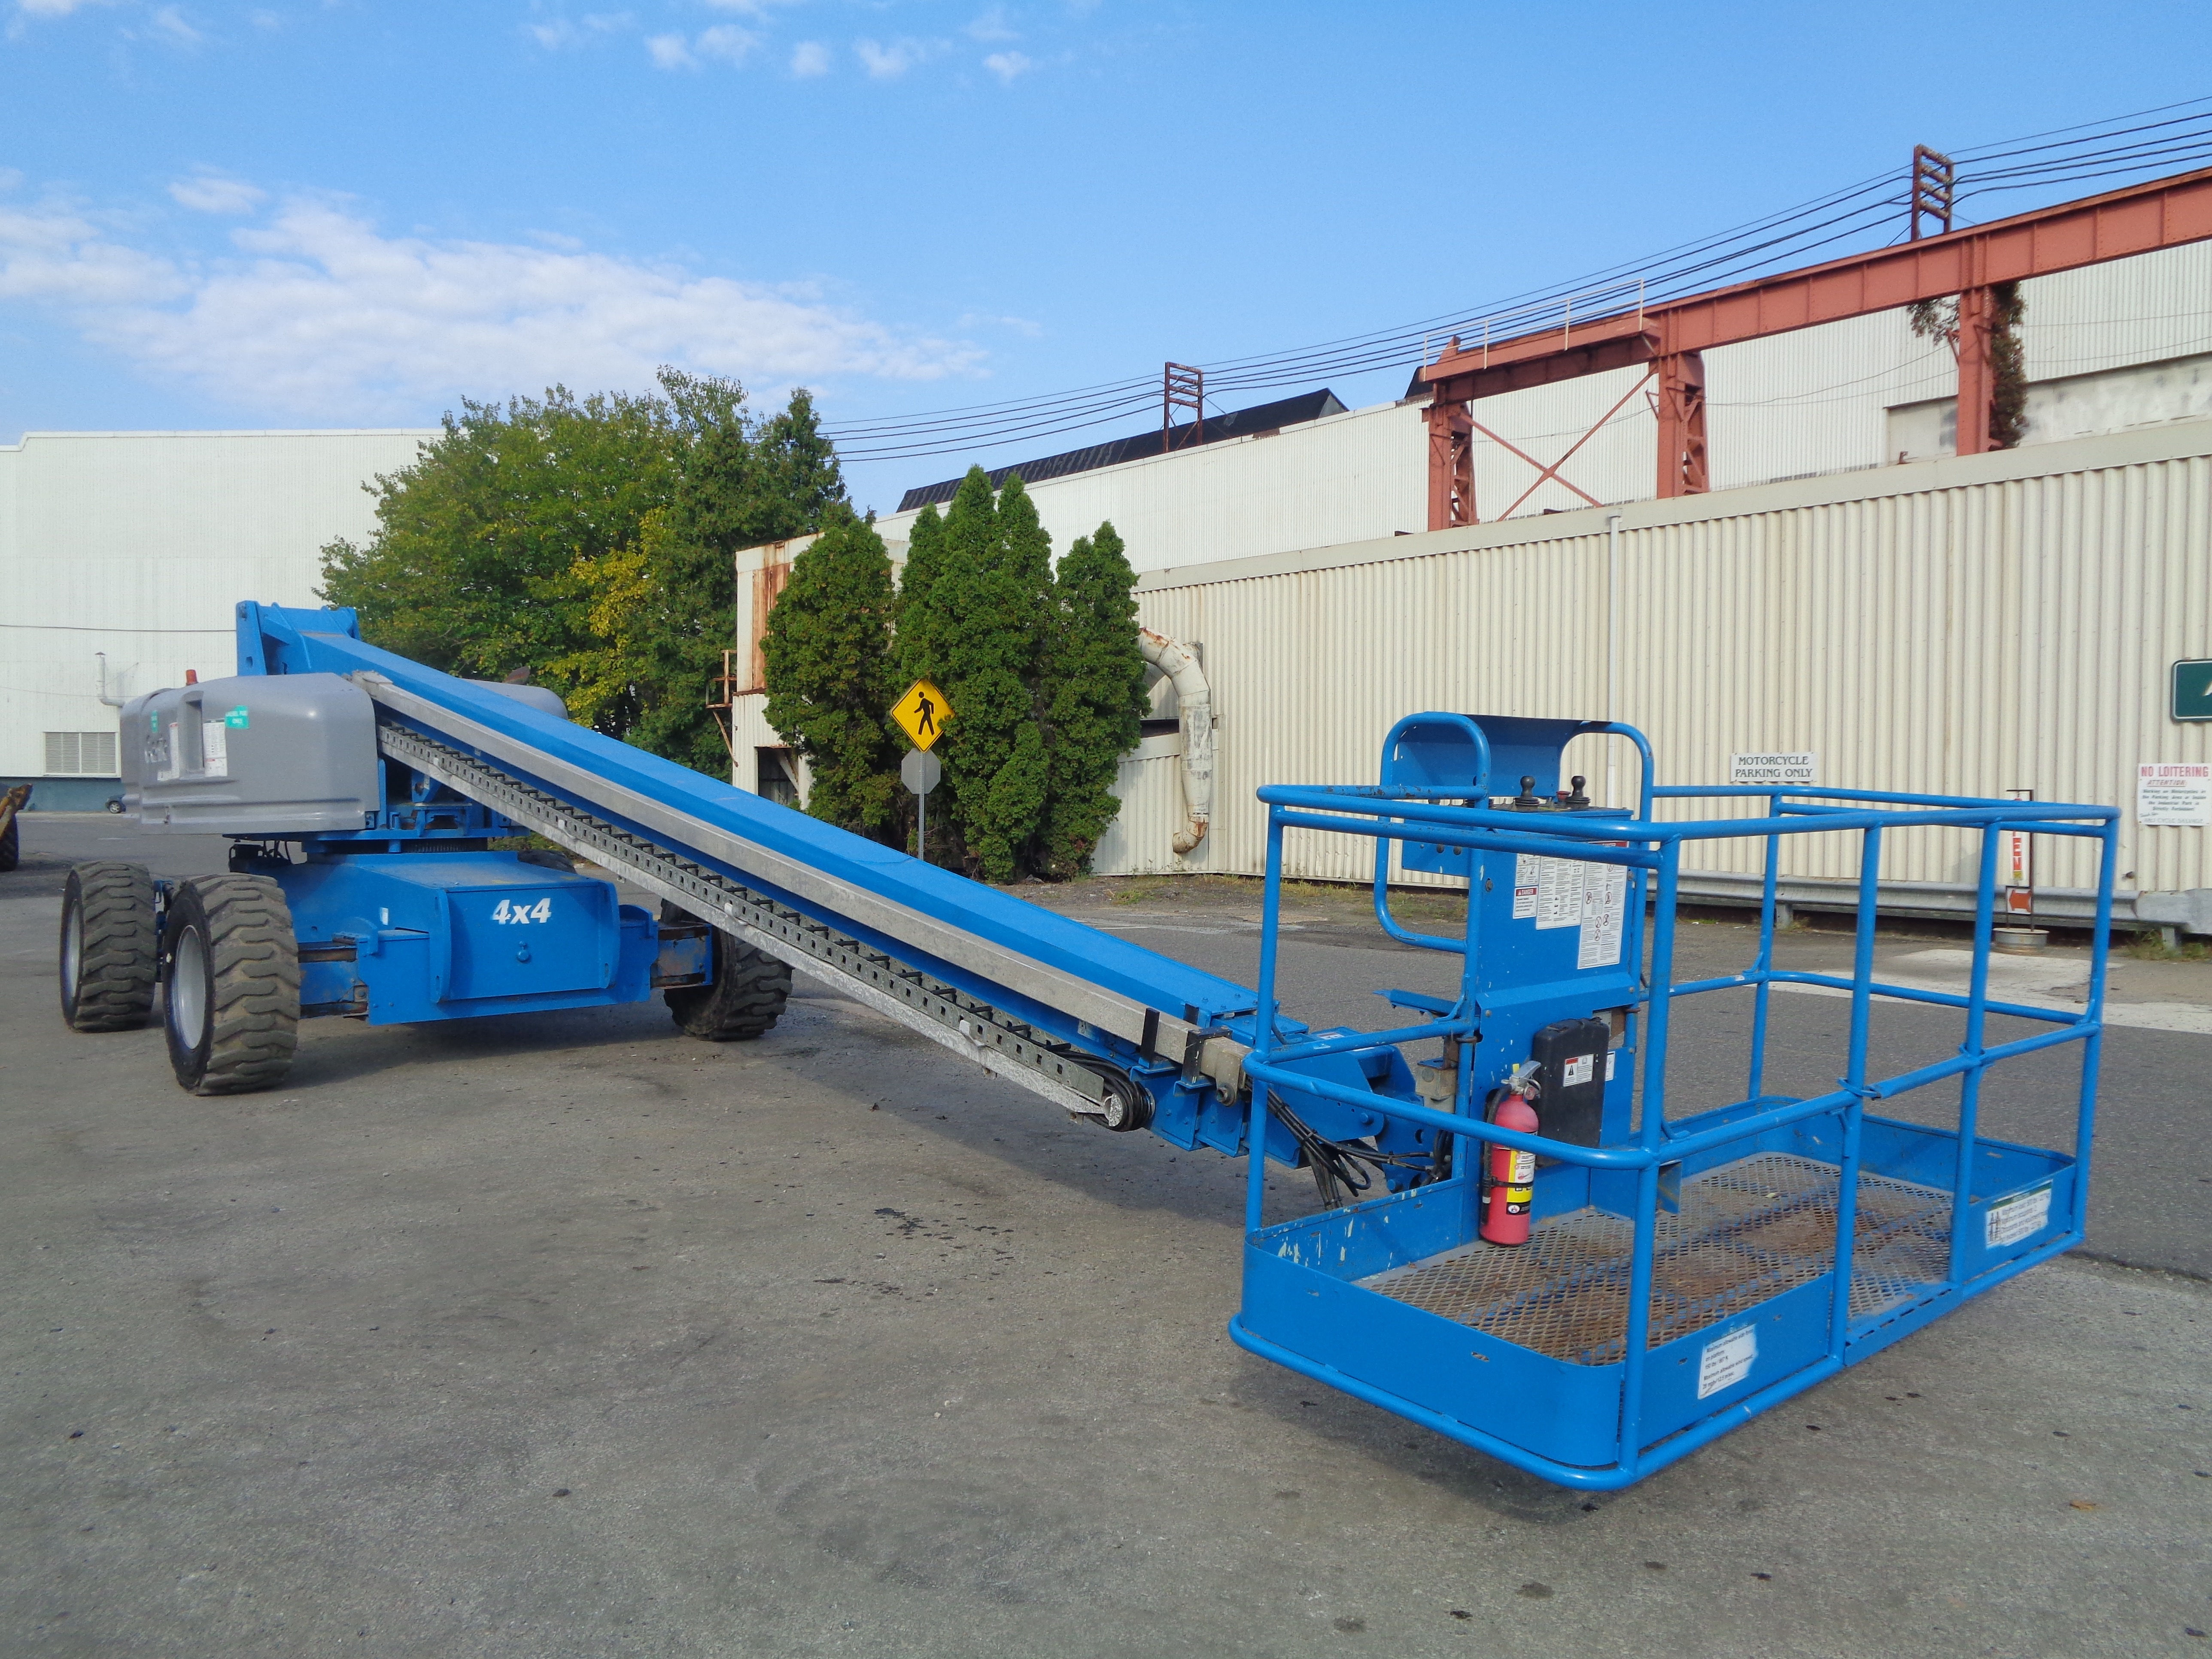 Genie S80 80ft Boom Lift - Image 12 of 22